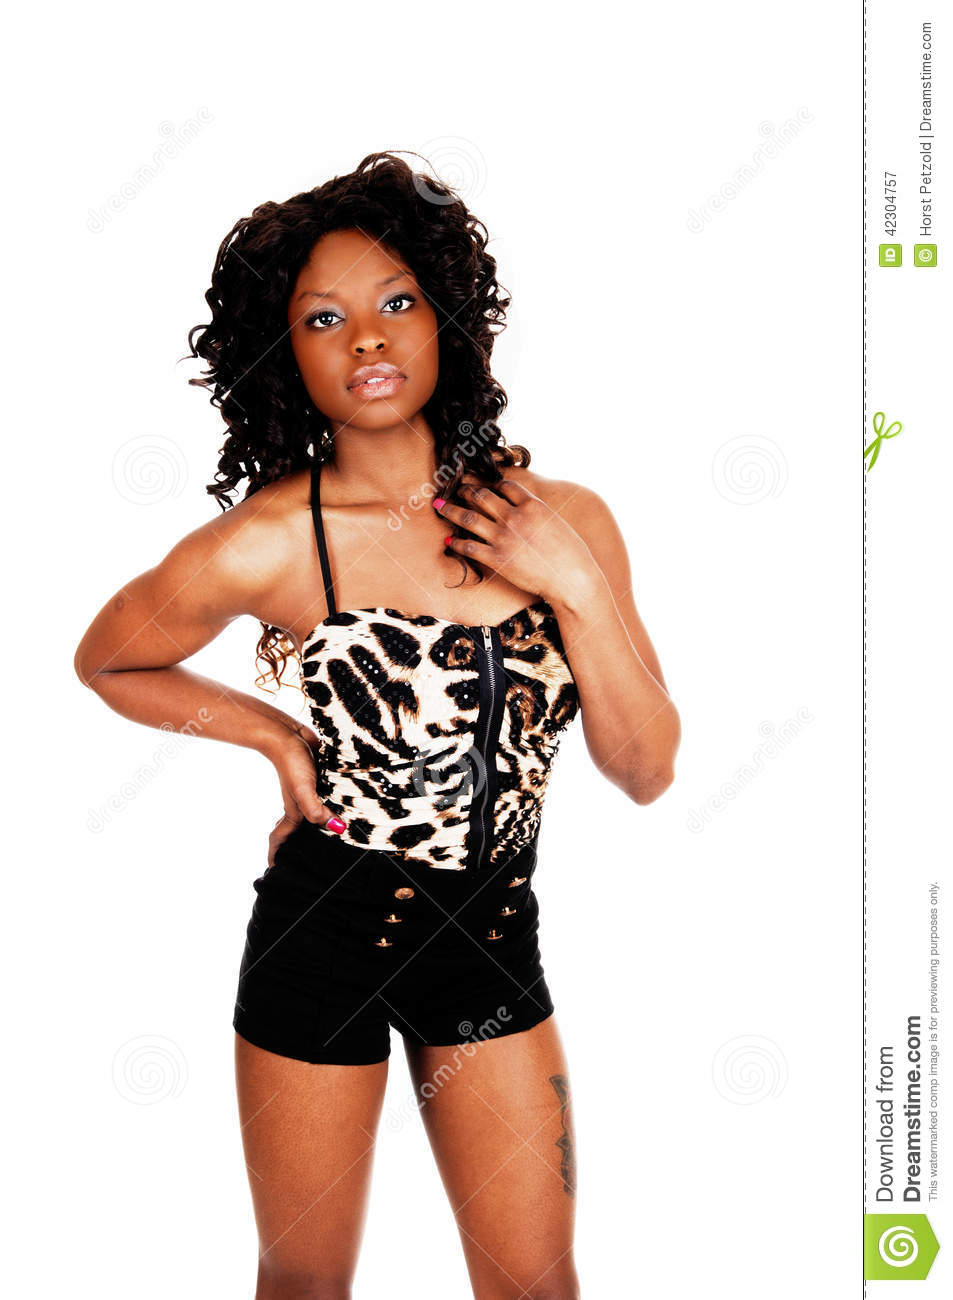 Jamaican Girl In Shorts Stock Image Image Of Beautiful -4292